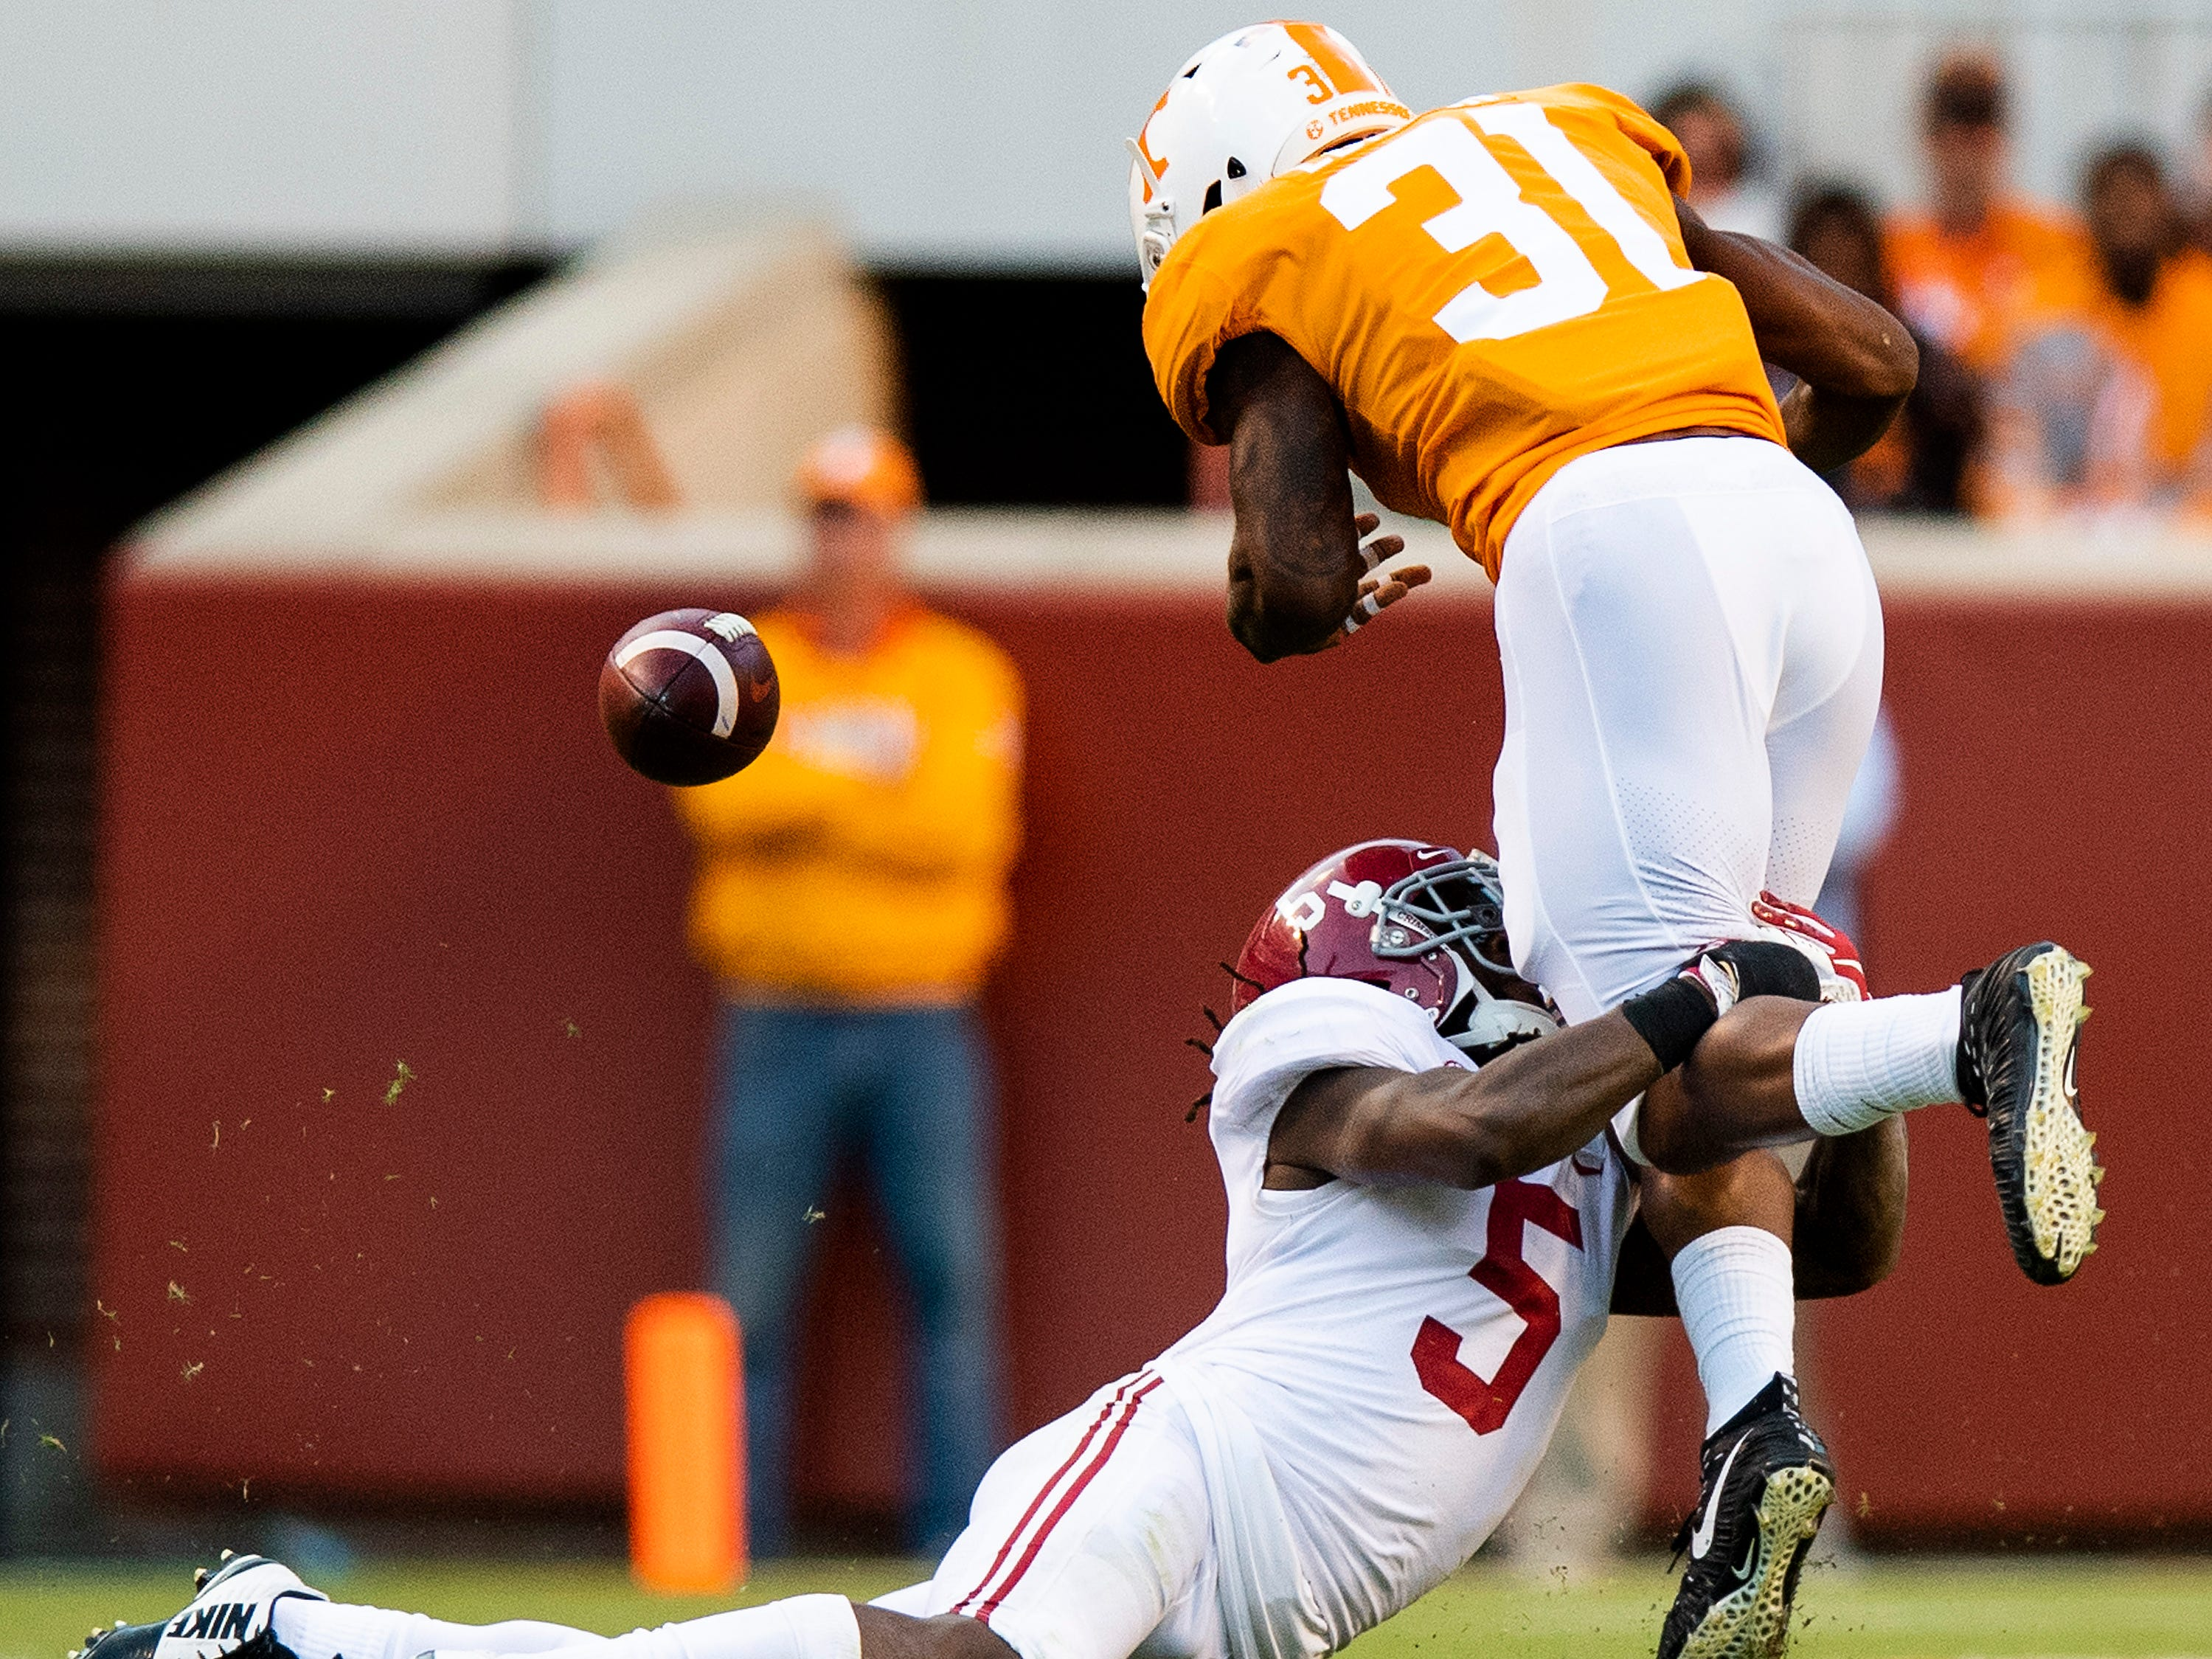 Alabama defensive back Shyheim Carter (5) causes a fumble by Tennessee running back Madre London (31) in second half action at Neyland Stadium in Knoxville, Tn., on Saturday October 20, 2018.